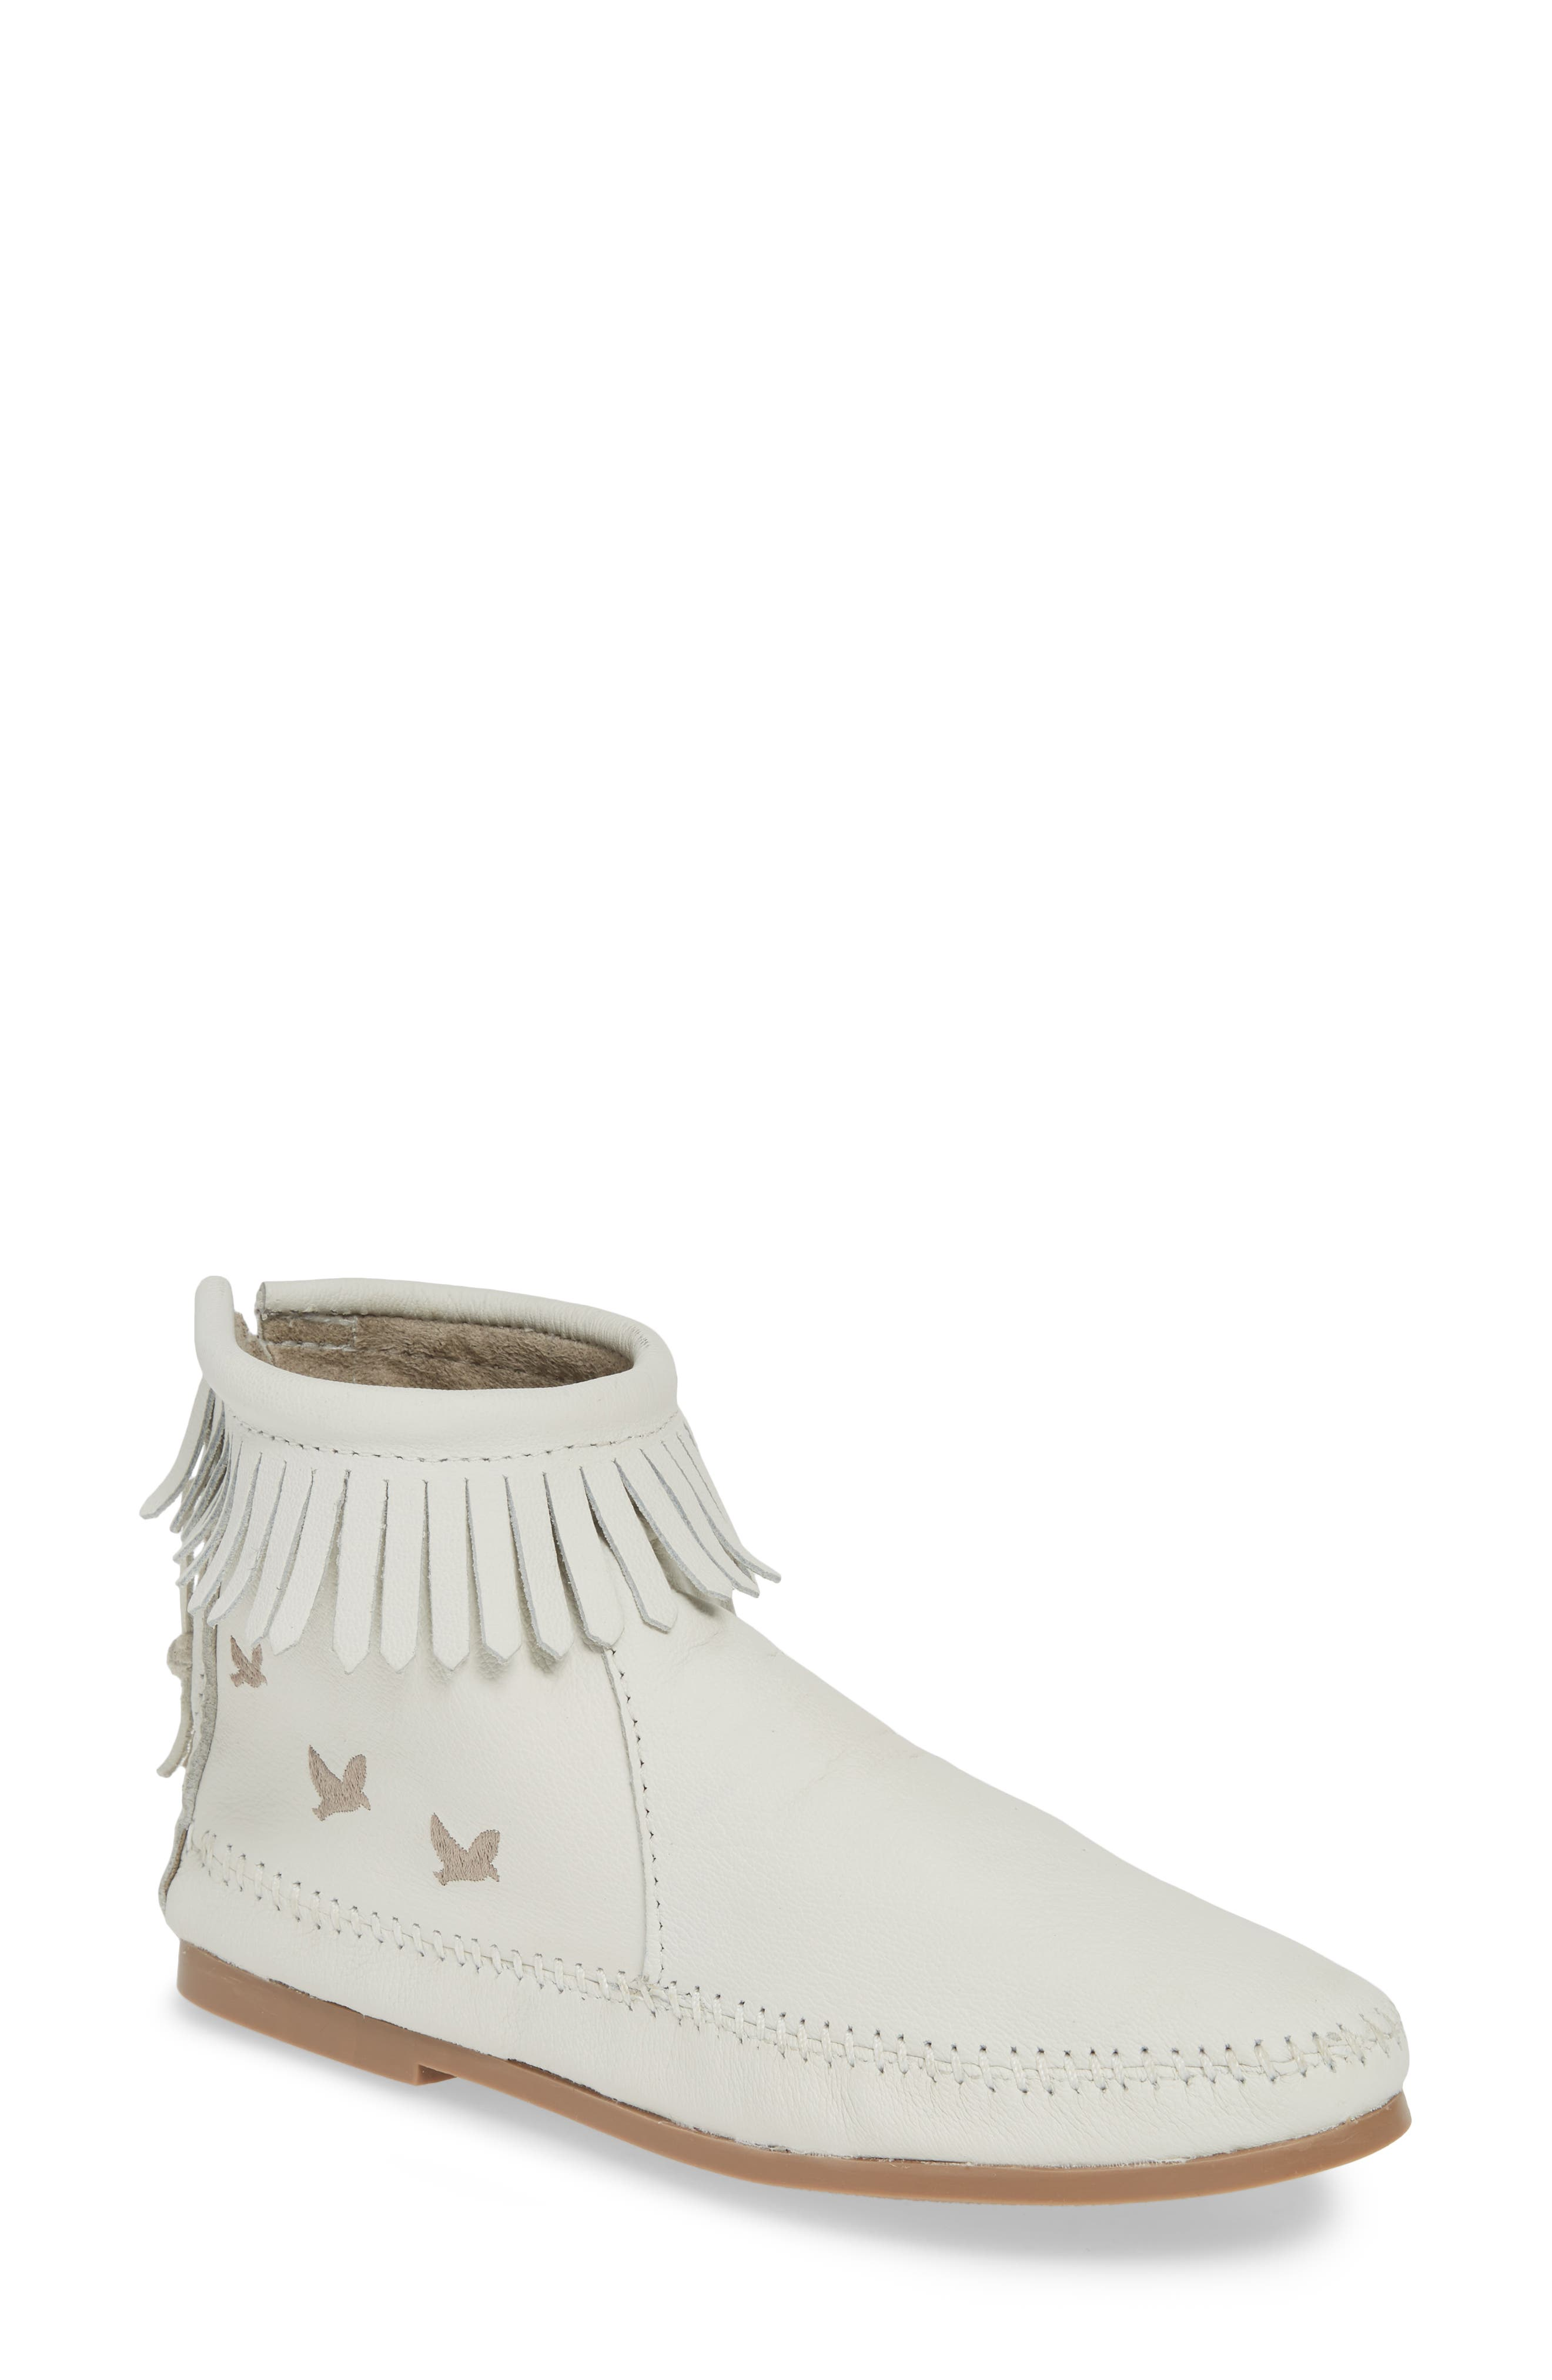 MINNETONKA, x Lottie Moss Lauryn Fringe Bootie, Main thumbnail 1, color, WHITE LEATHER